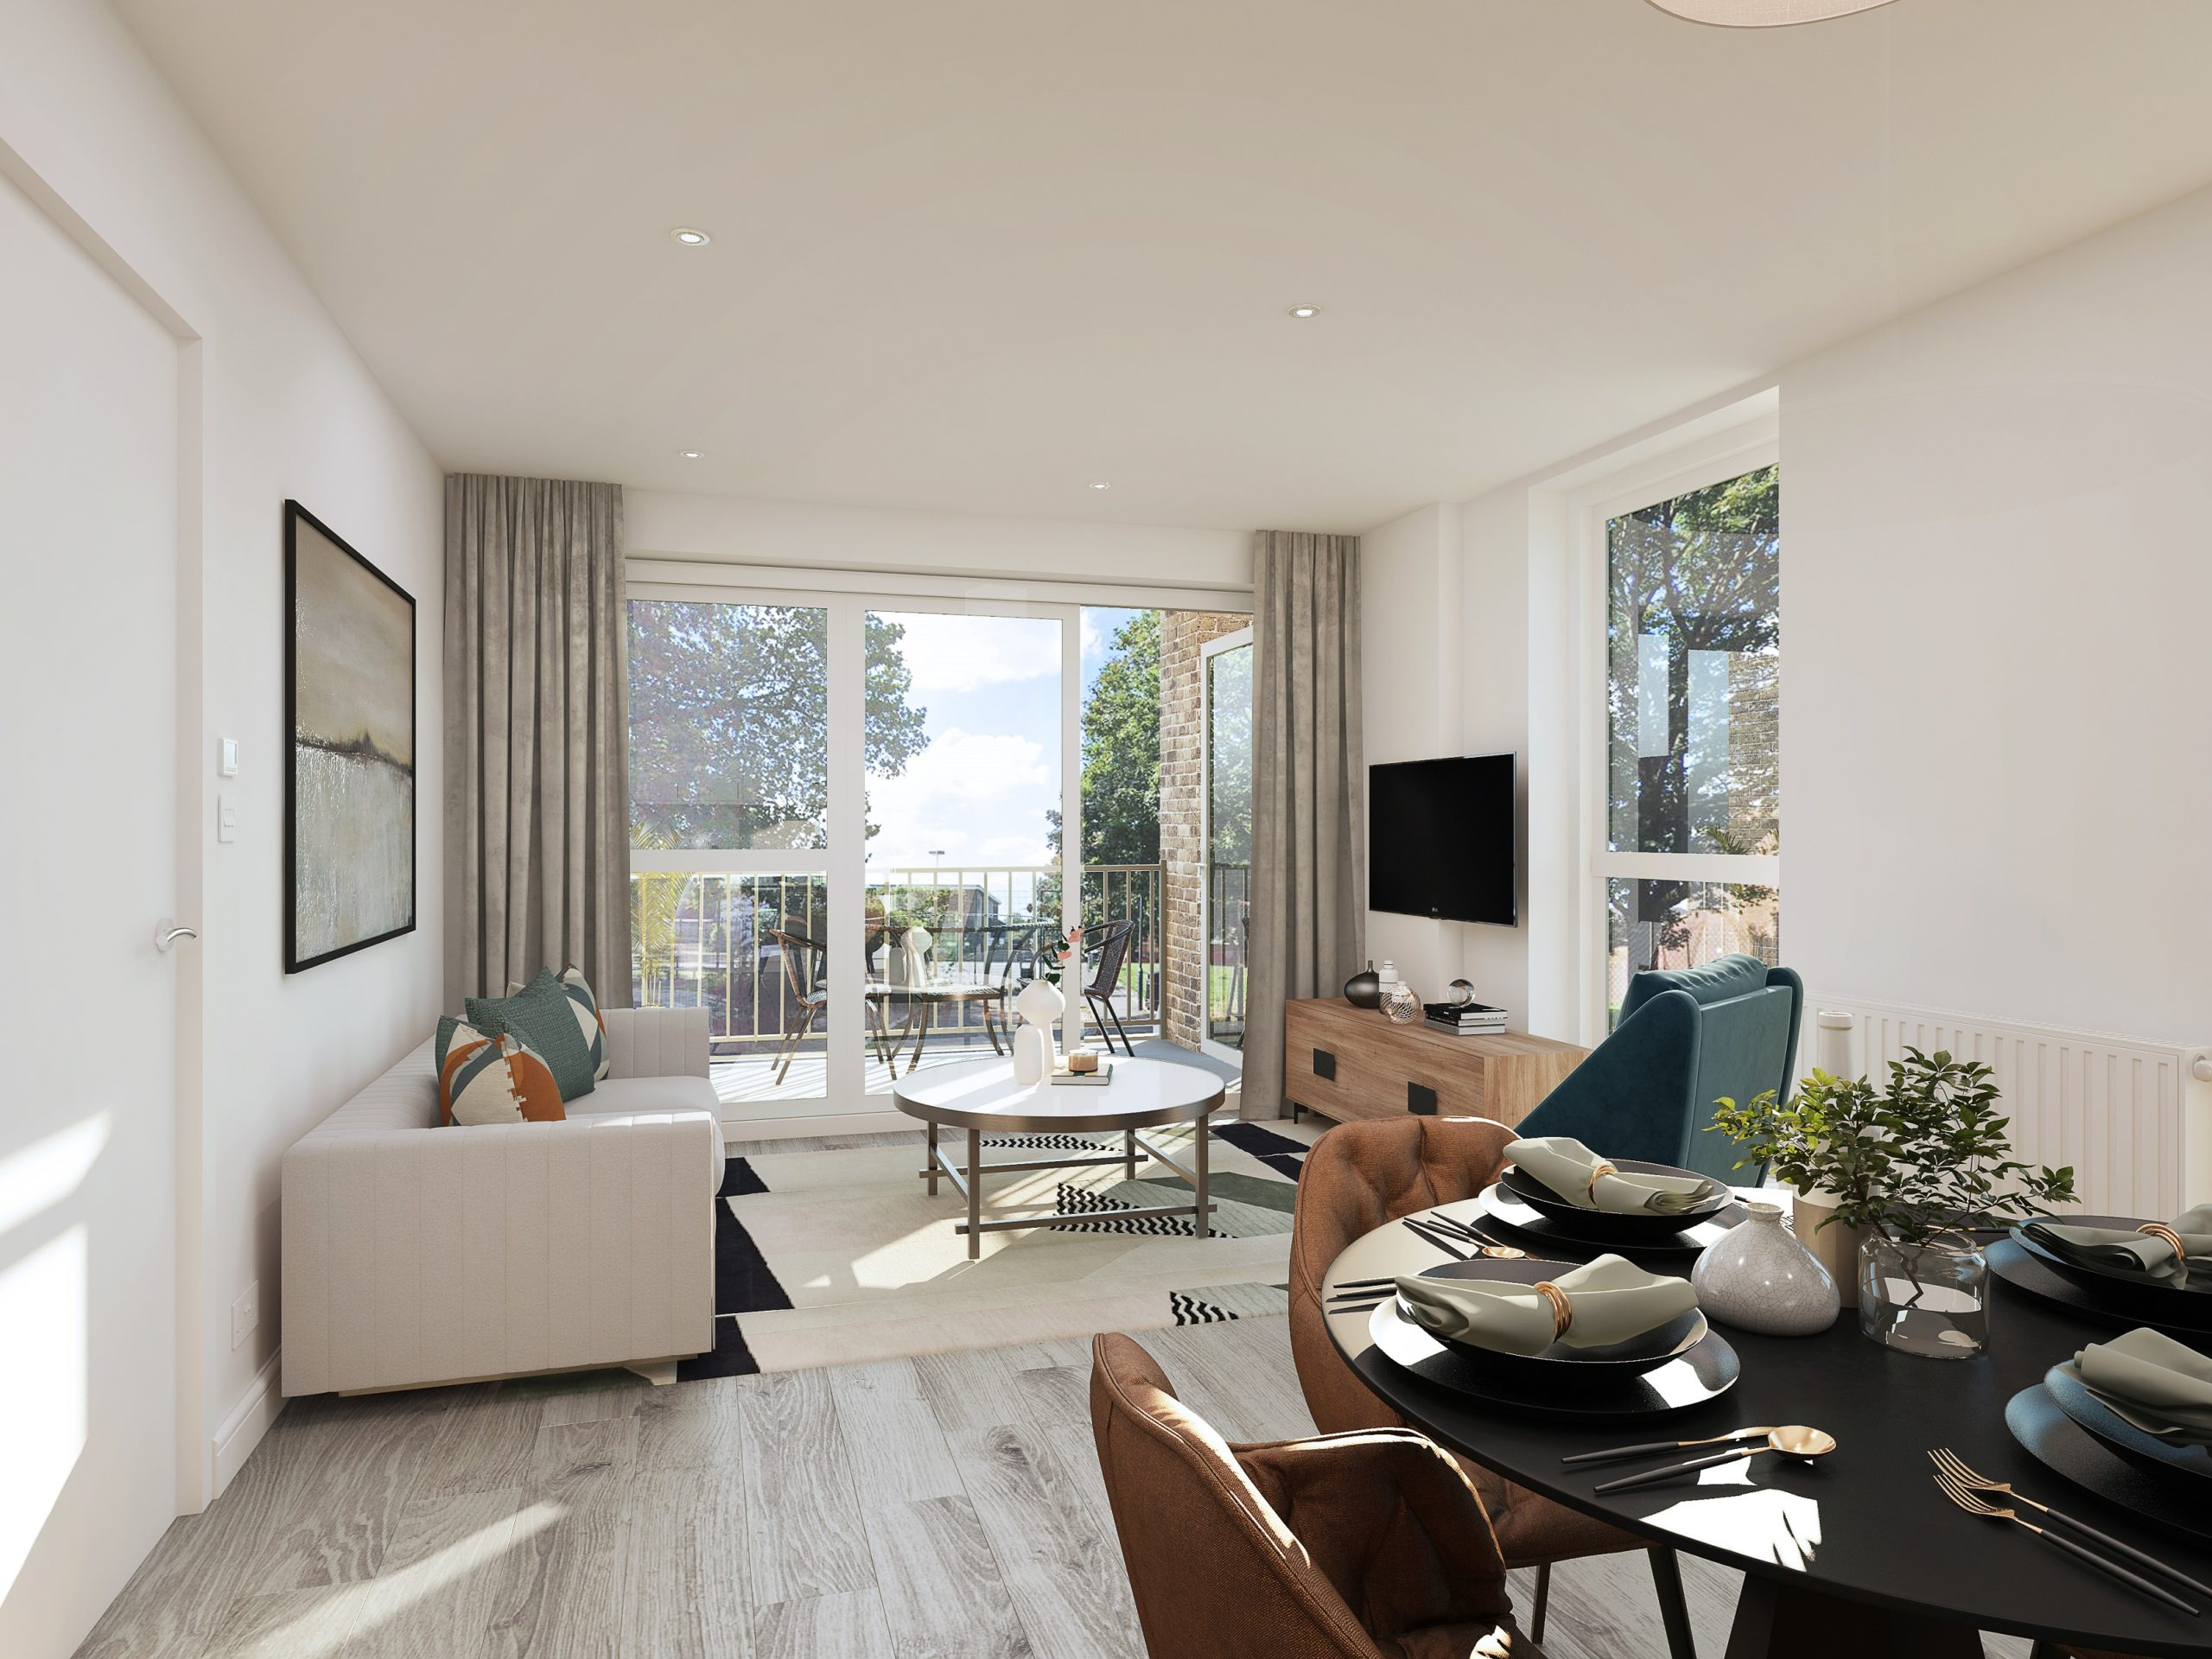 Interior show home photography of Catalyst's Newman Place development - Shared Ownership and Help to Buy homes available on Share to Buy